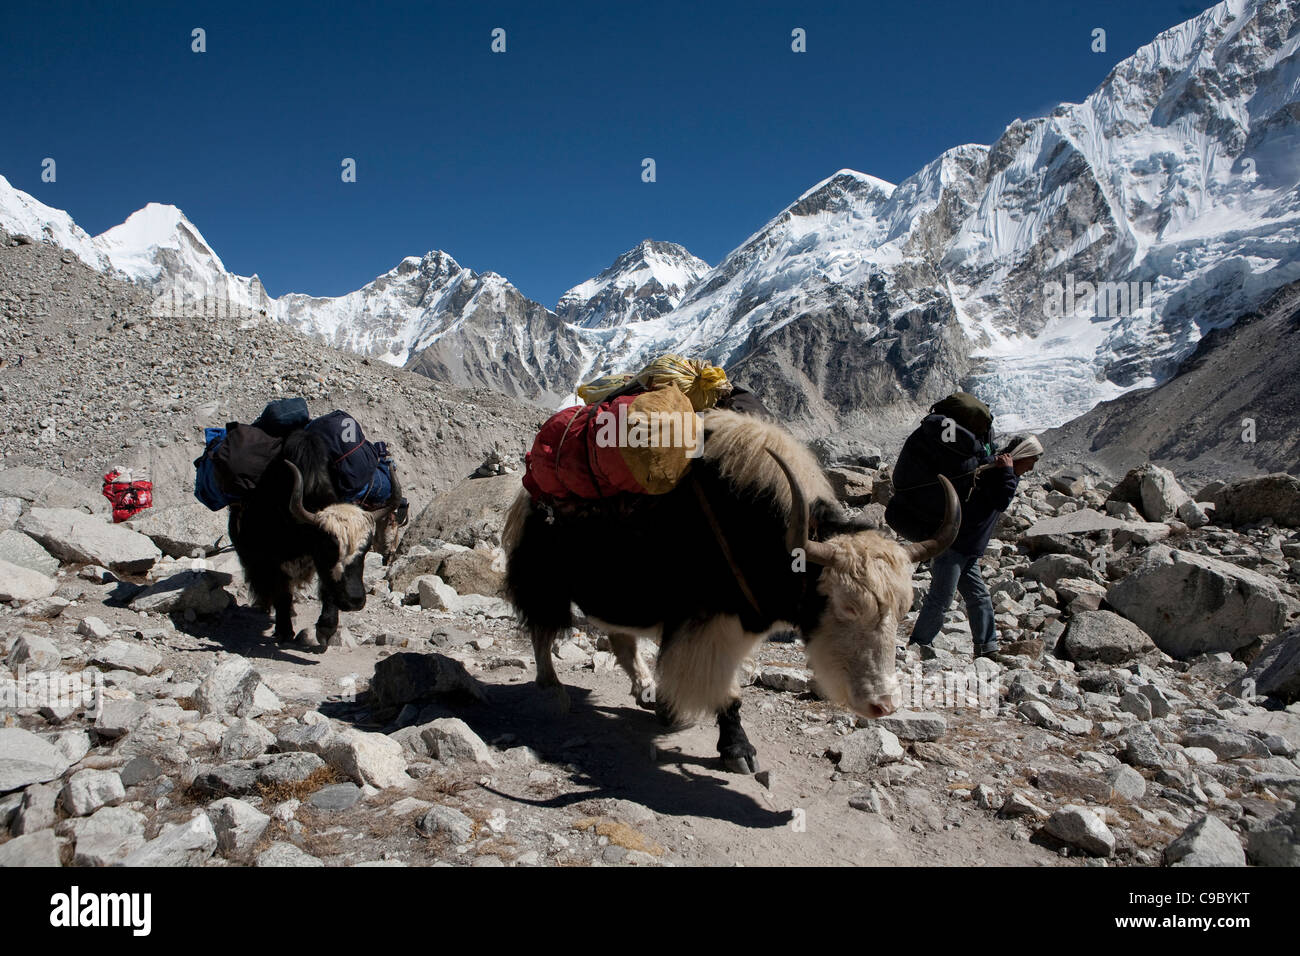 October 2009 Everest region - en route Labouche to Gorek Shep Yaks - Stock Image